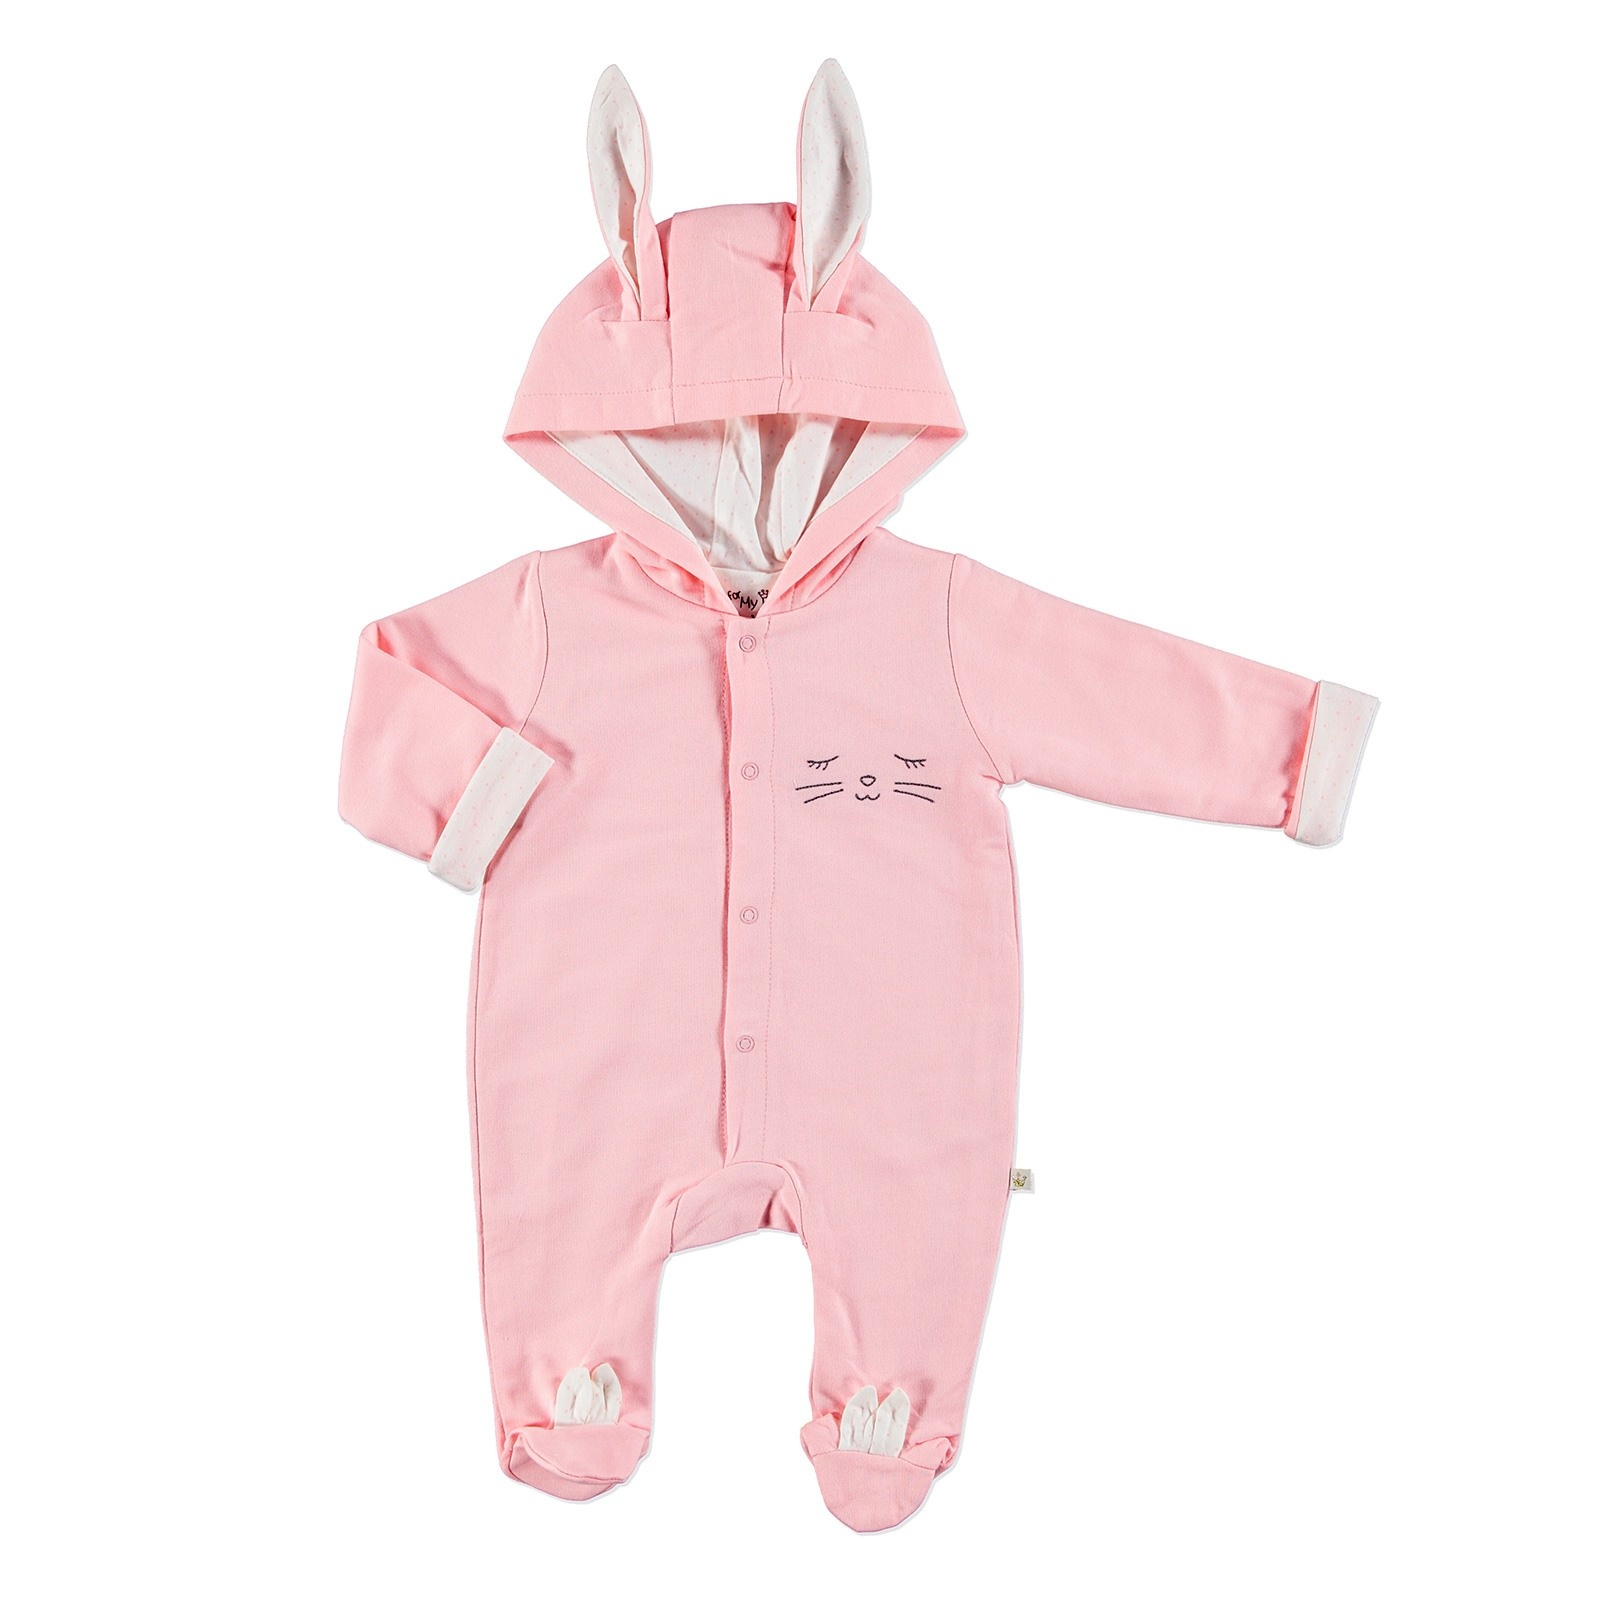 Ebebek For My Baby Bunny Footed Eared Romper